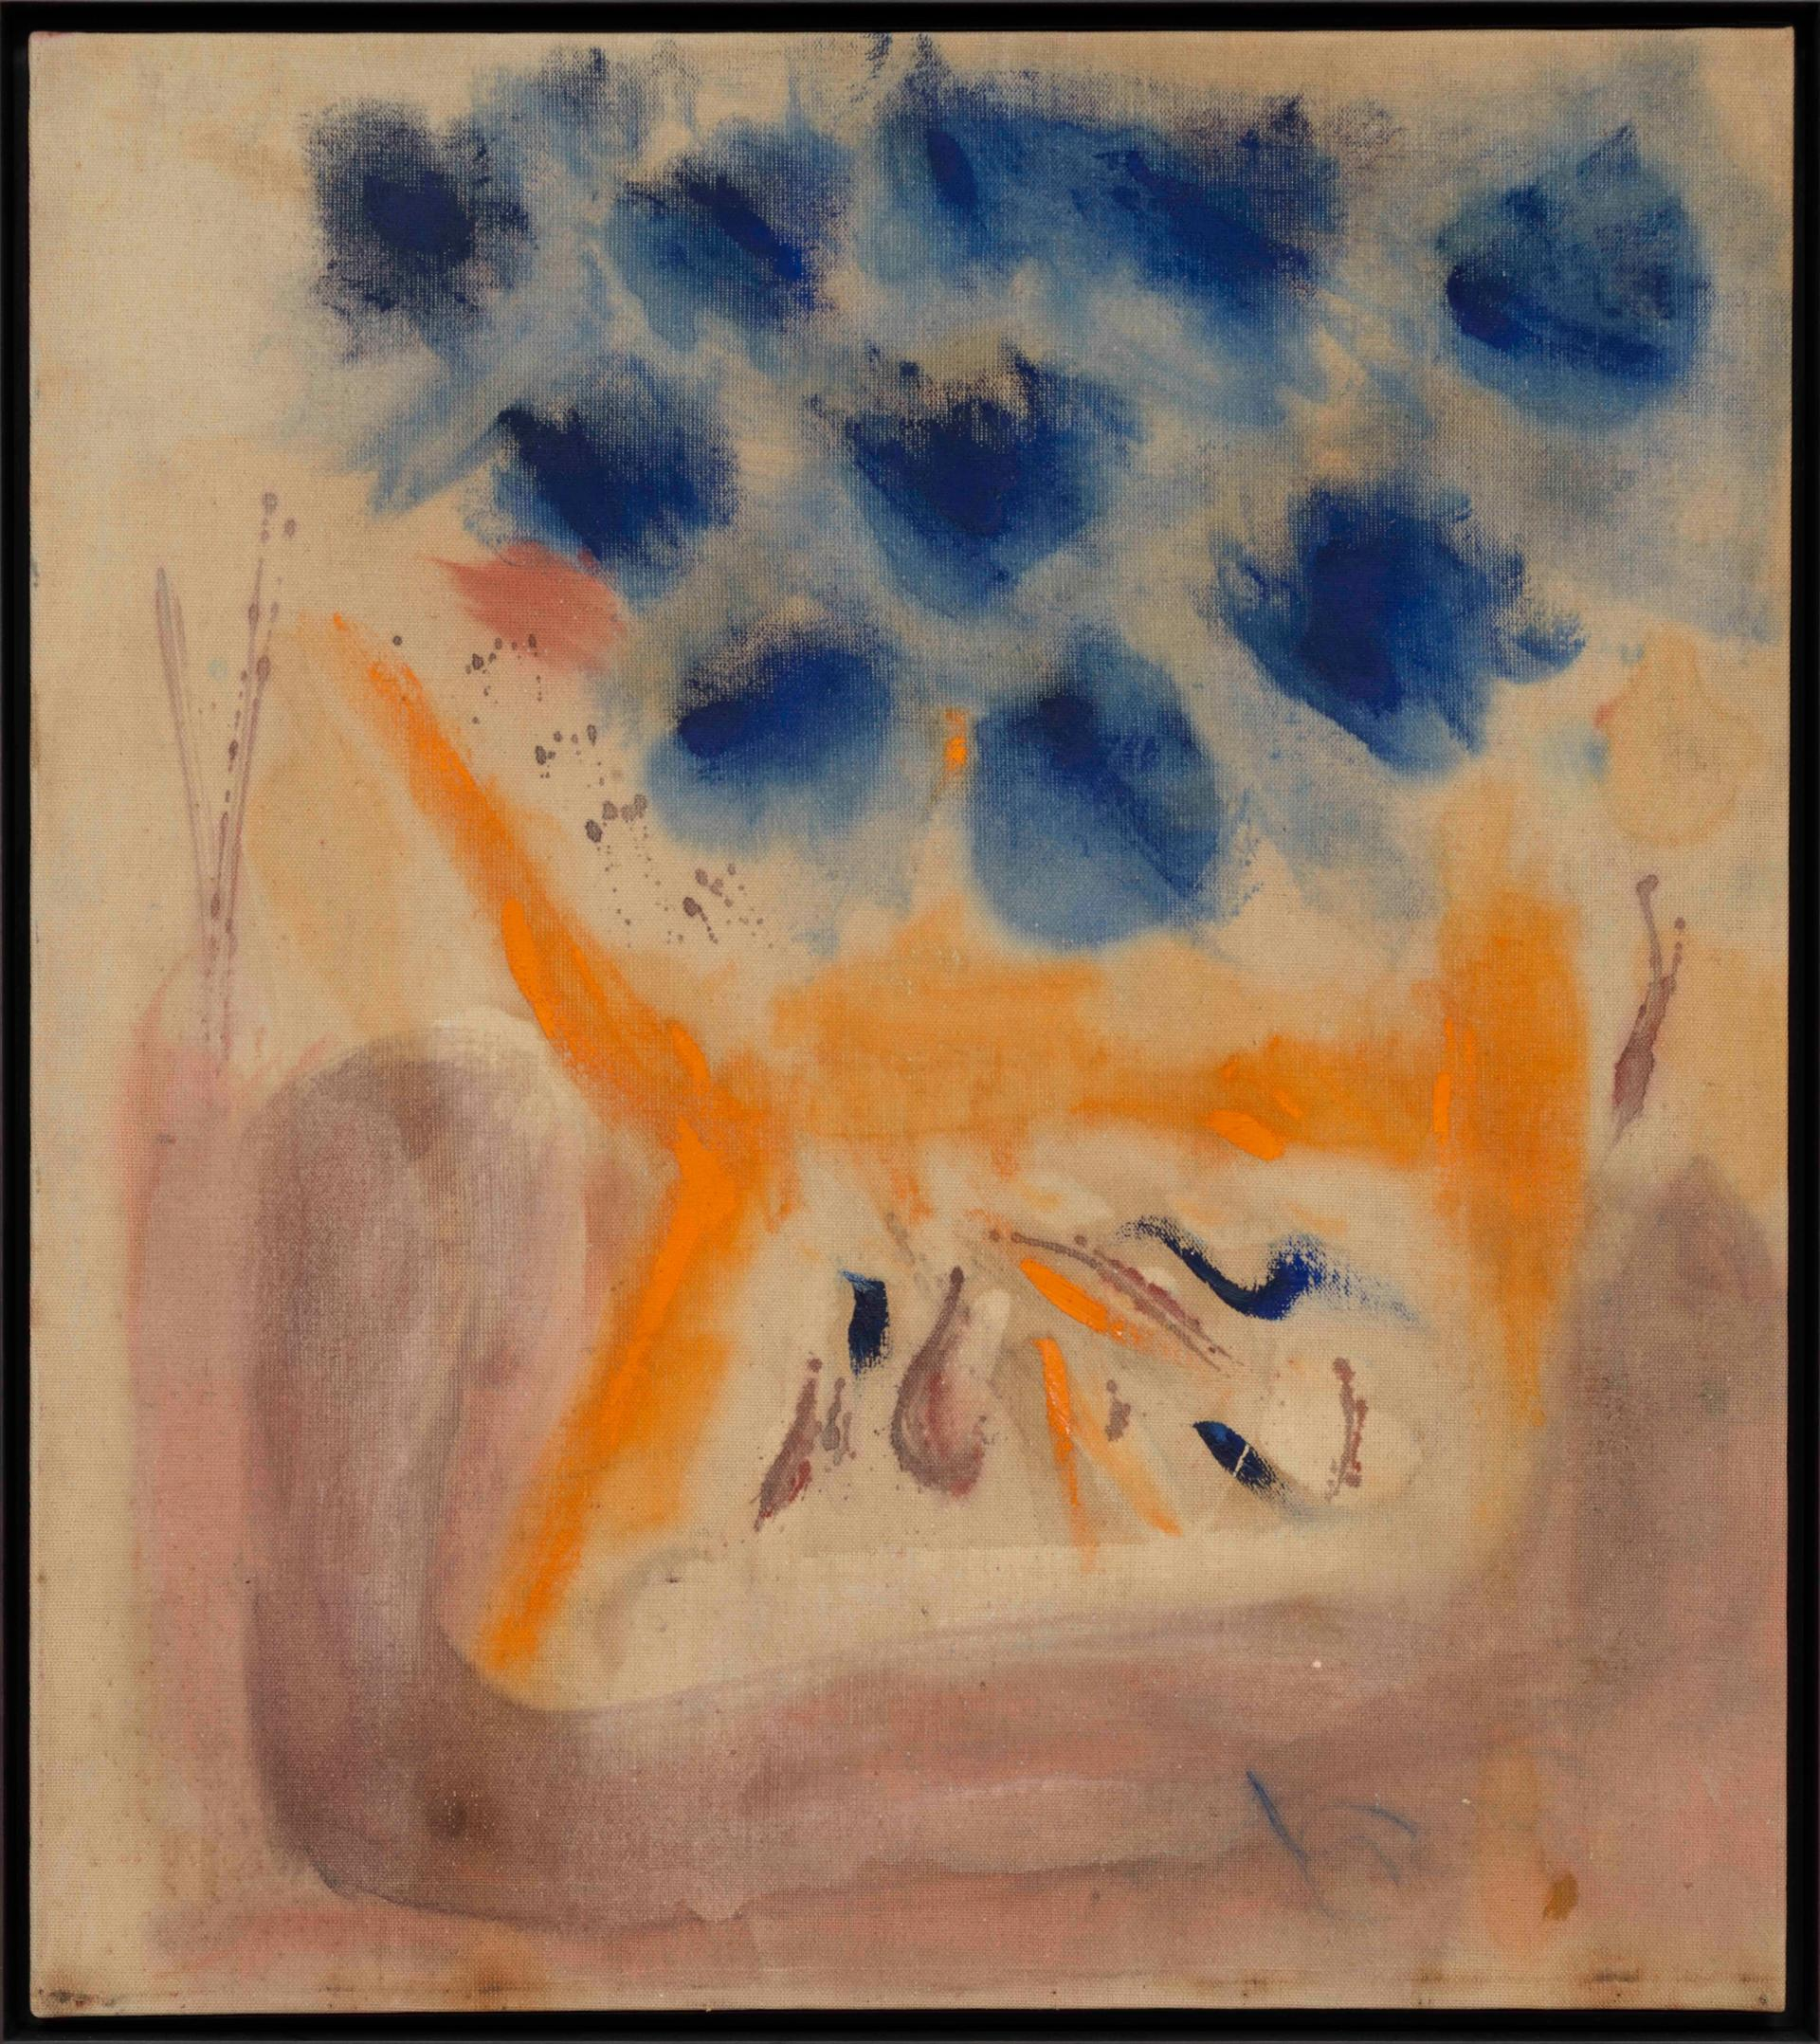 With Blue (1953) by Helen Frankenthaler © 2019 Helen Frankenthaler Foundation, Inc./Artists Rights Society (ARS), New York. Photo: Rob McKeever. Courtesy Gagosian